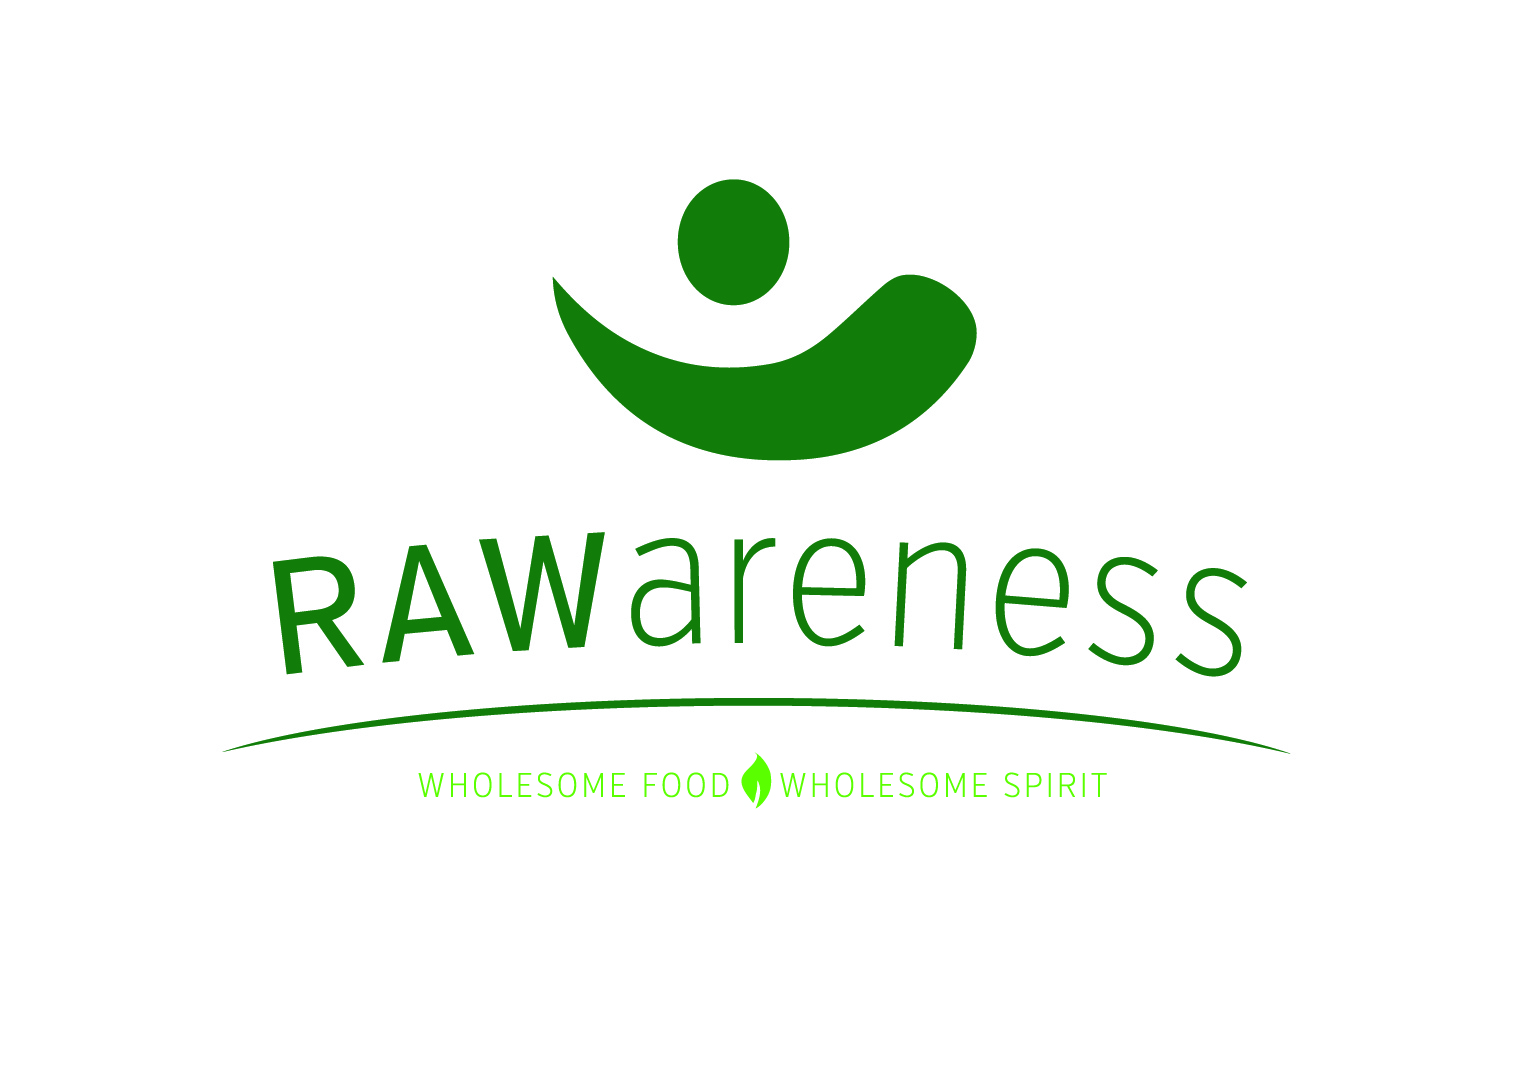 RAWareness Wholesome Food Wholesome Spirit